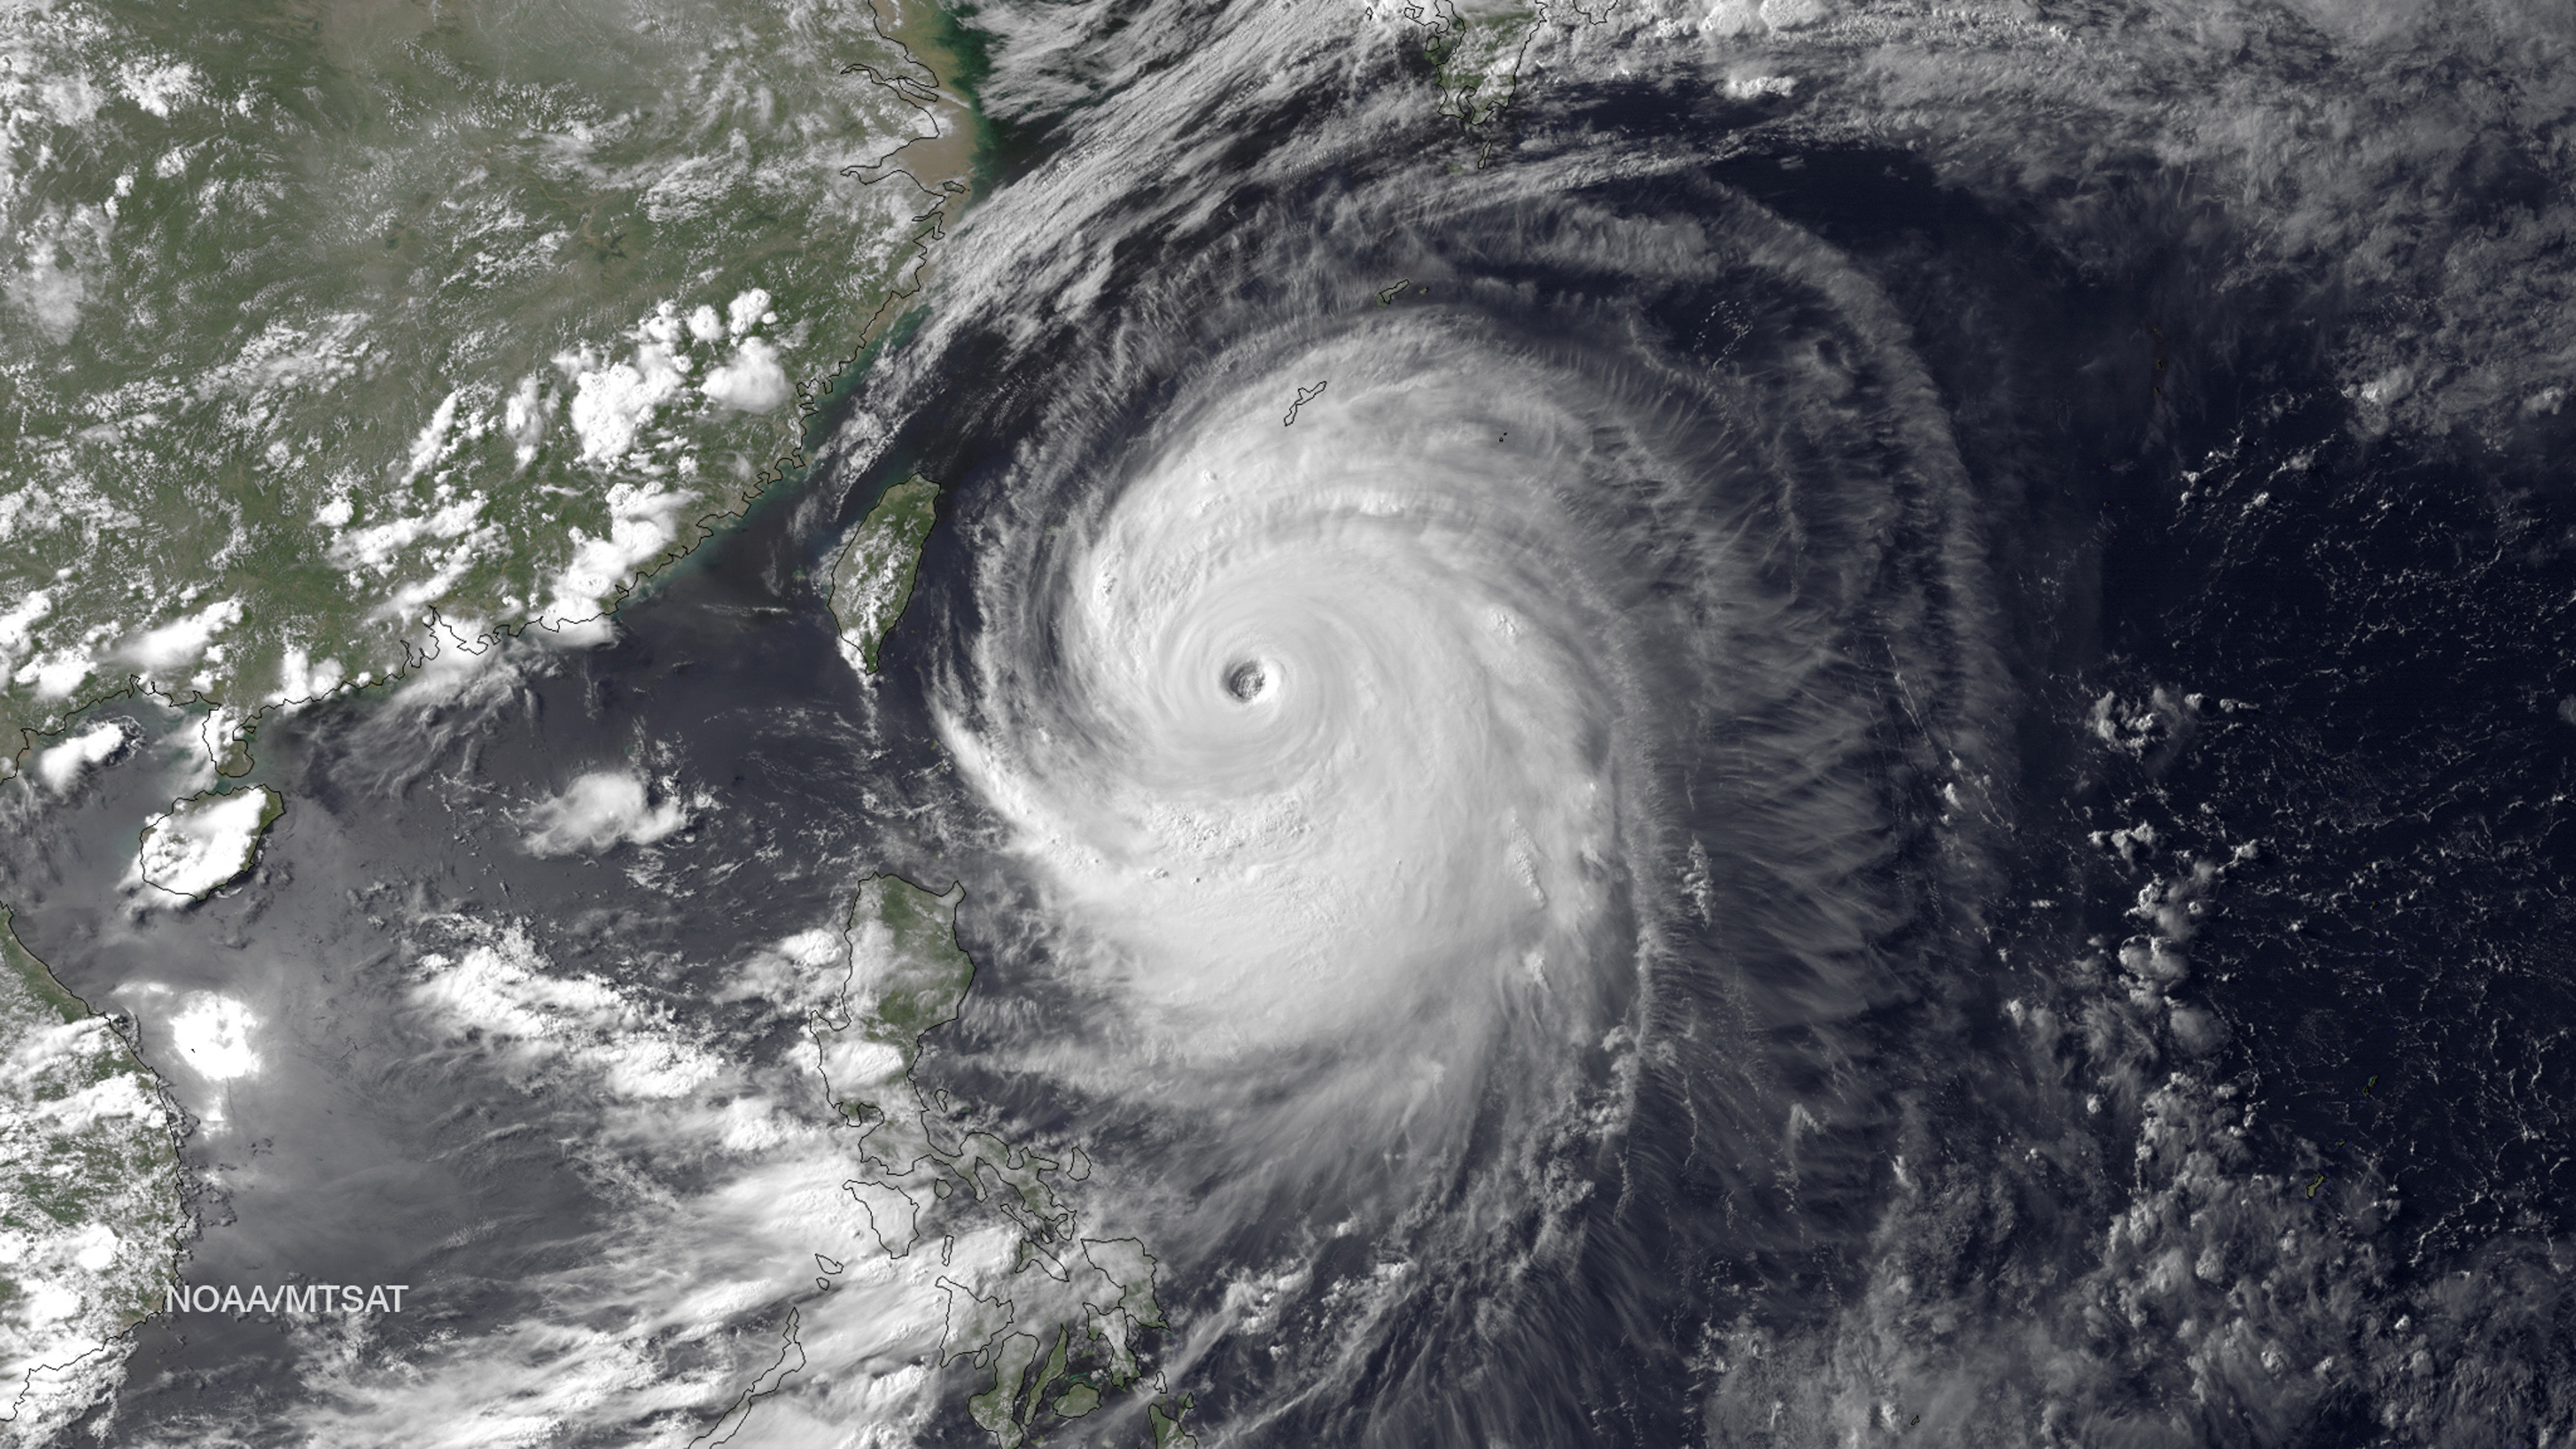 Image: Super Typhoon Neoguri in the Pacific Ocean, approaching Japan on its northward journey, is seen in an image taken by MTSAT-2 satellite on July 7, 2014 Image credit: NOAA